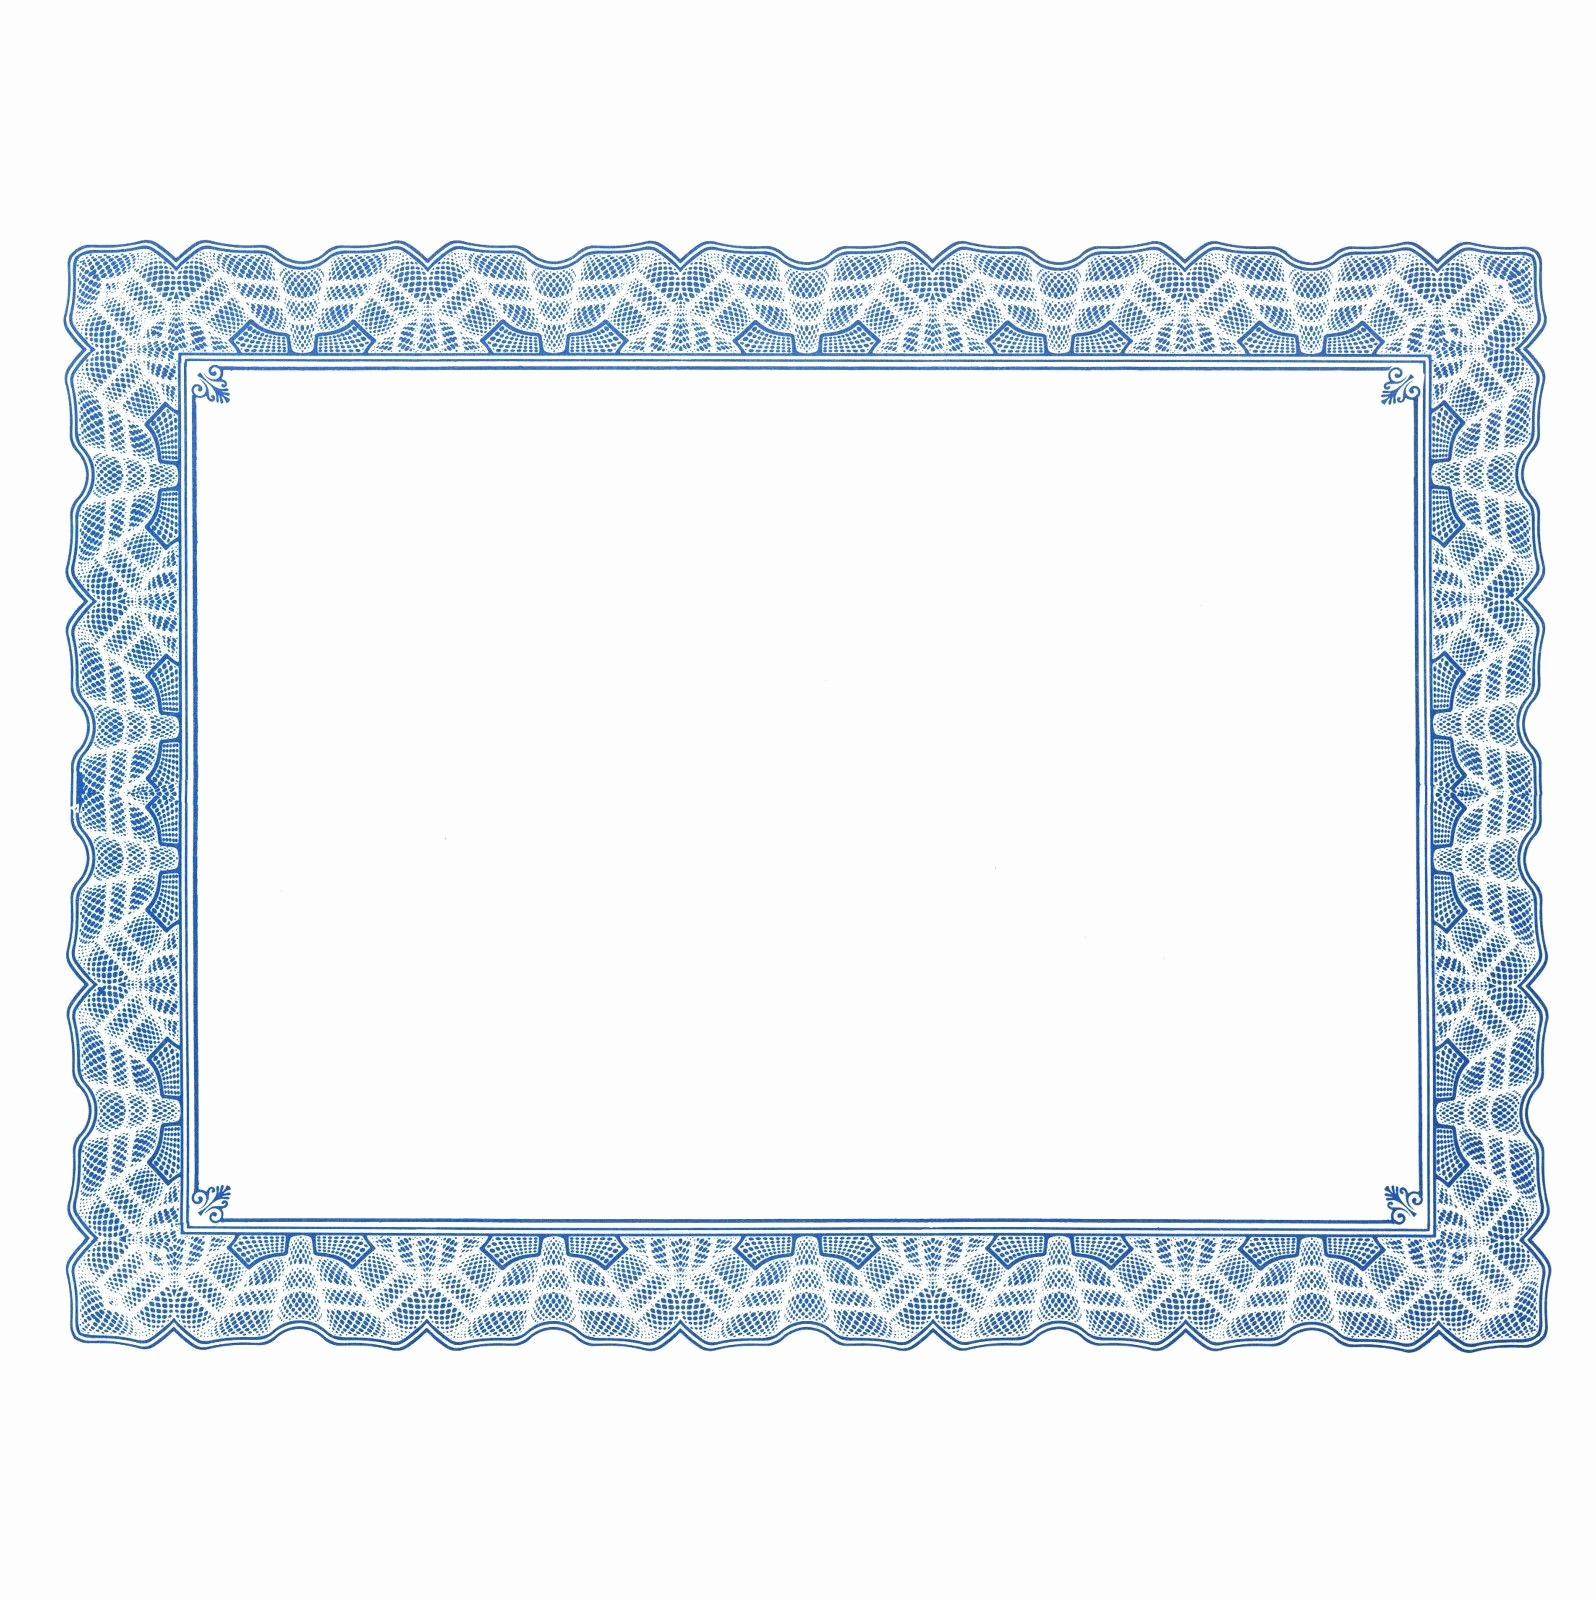 Certificate Border Template for Word New Free Certificate Border Templates for Word